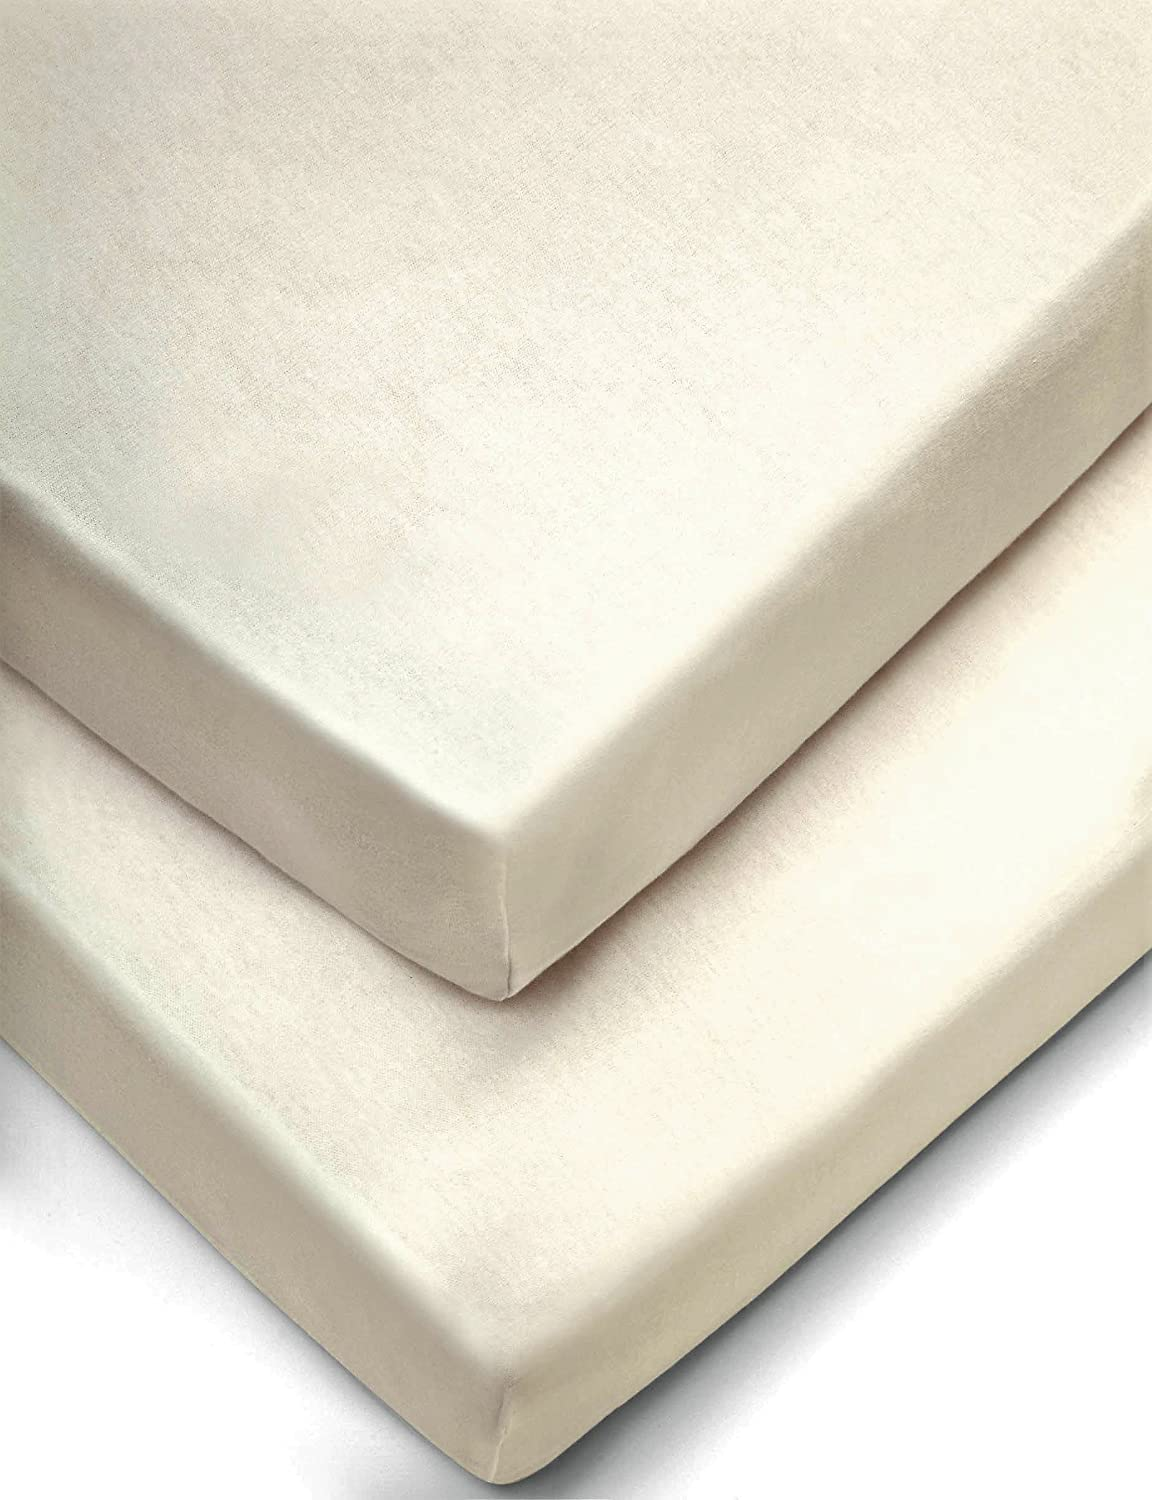 Cream 2X Cot Bed Fitted Sheets Polycotton by Sasa Craze Bedding